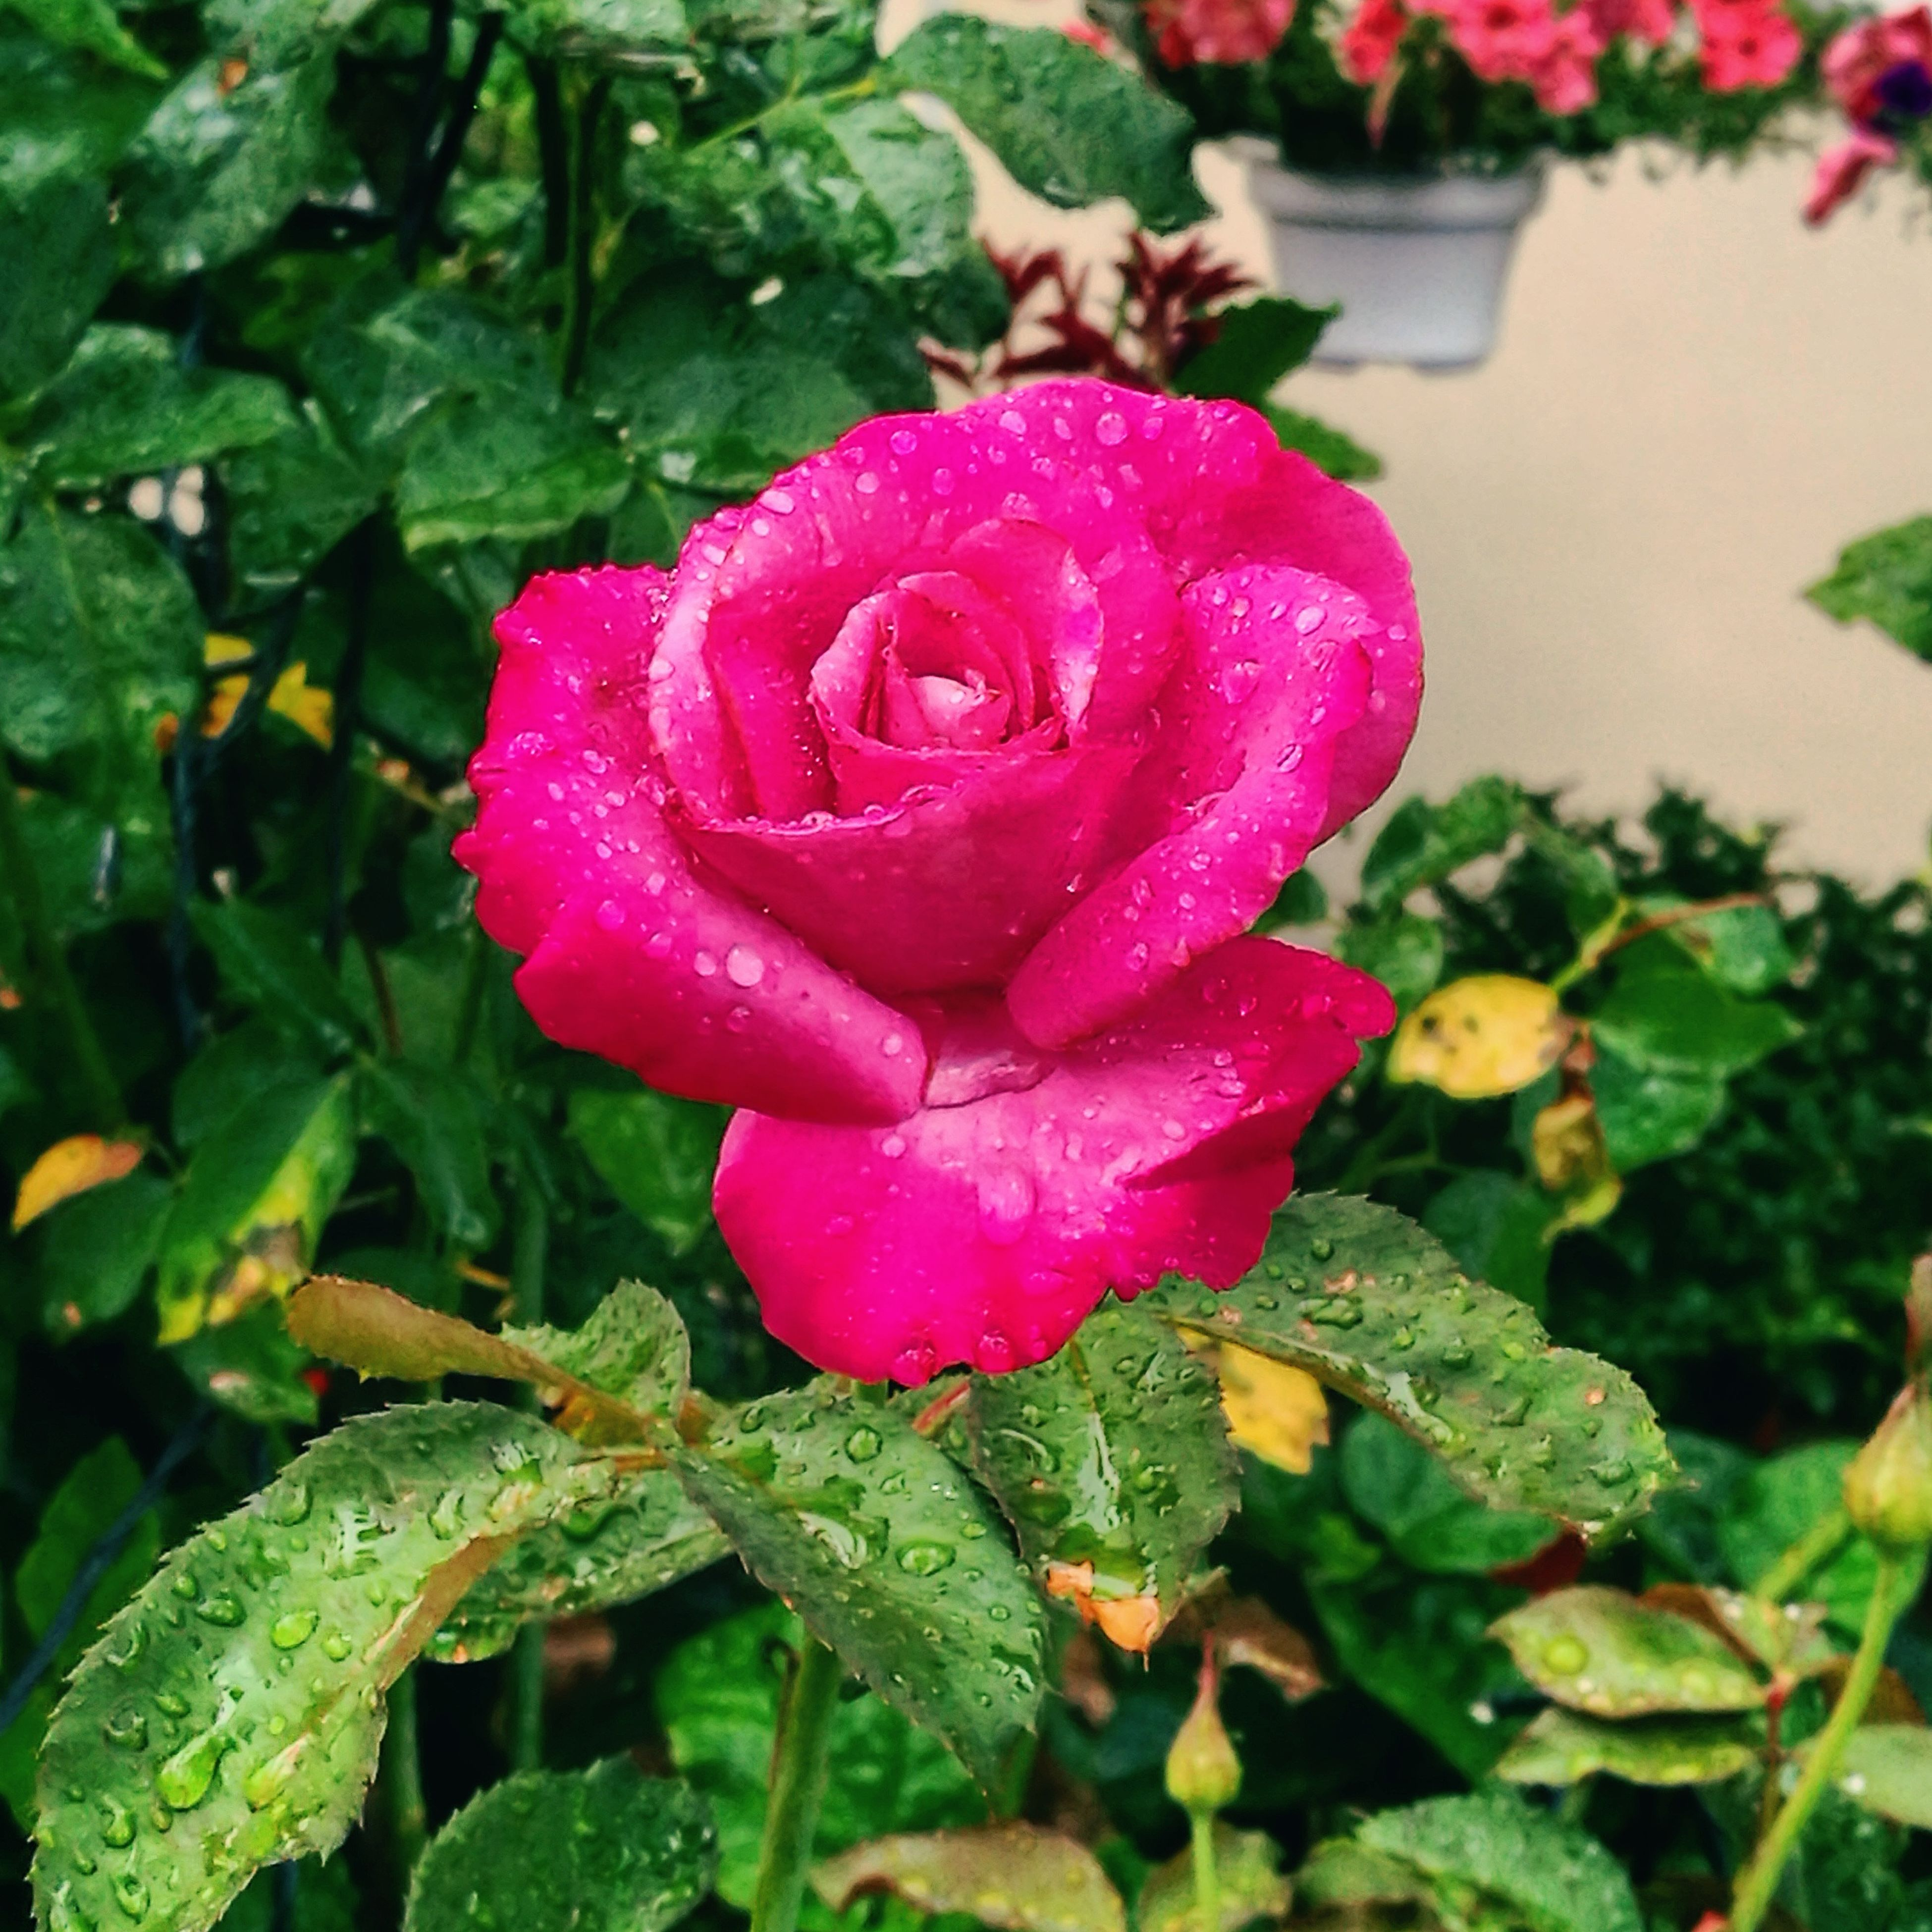 growth, nature, pink color, red, leaf, plant, beauty in nature, petal, outdoors, fragility, freshness, flower, close-up, blooming, no people, day, flower head